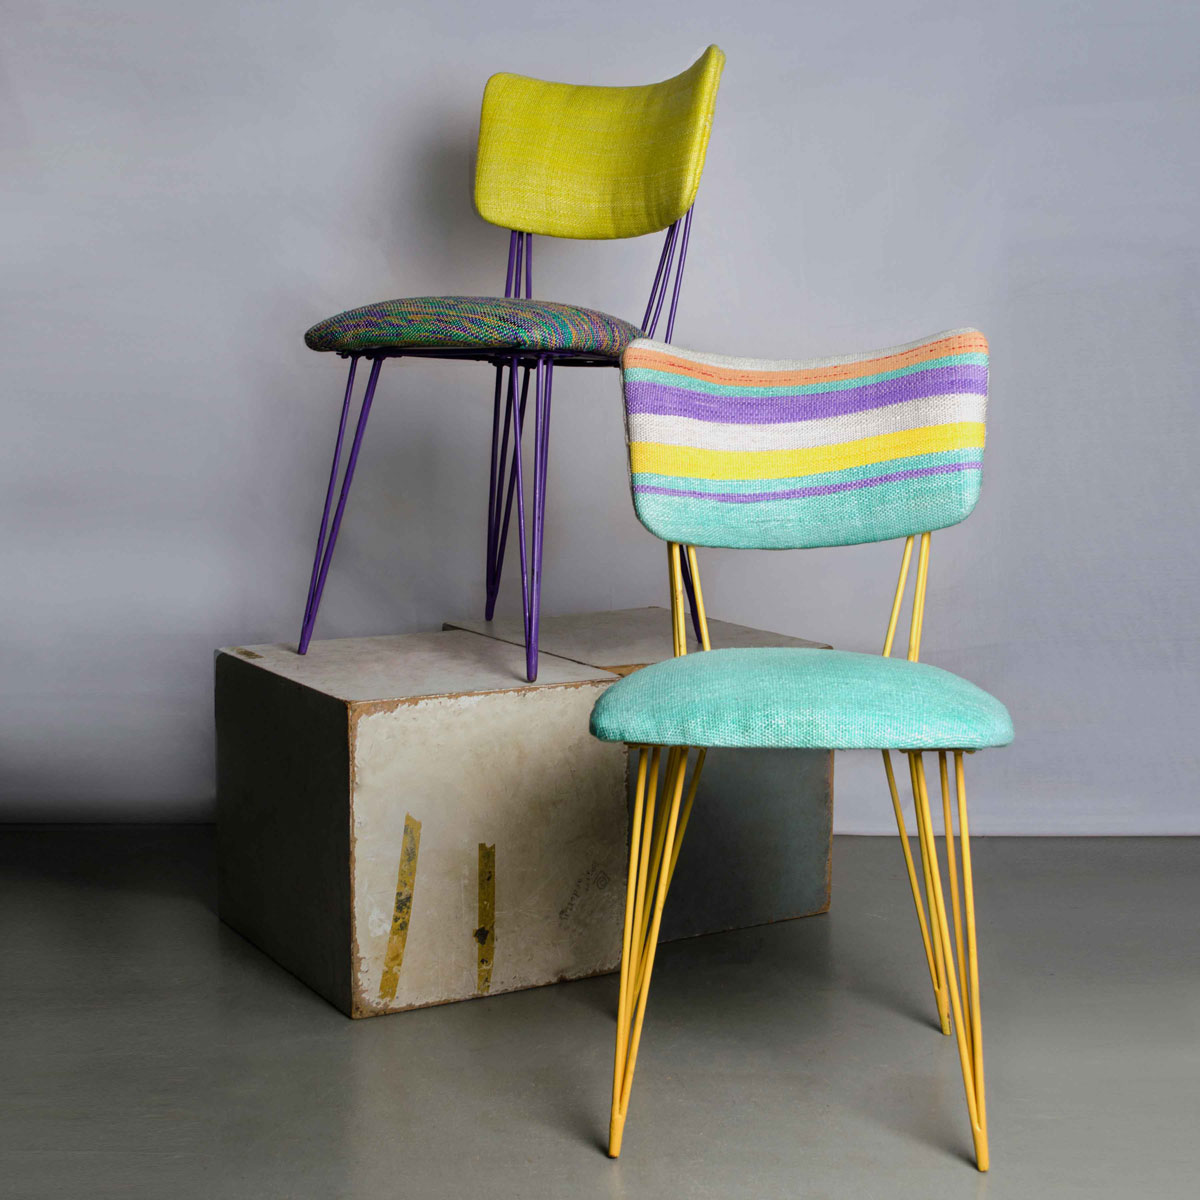 Reform From Trash To Furniture In Cairo Design Indaba